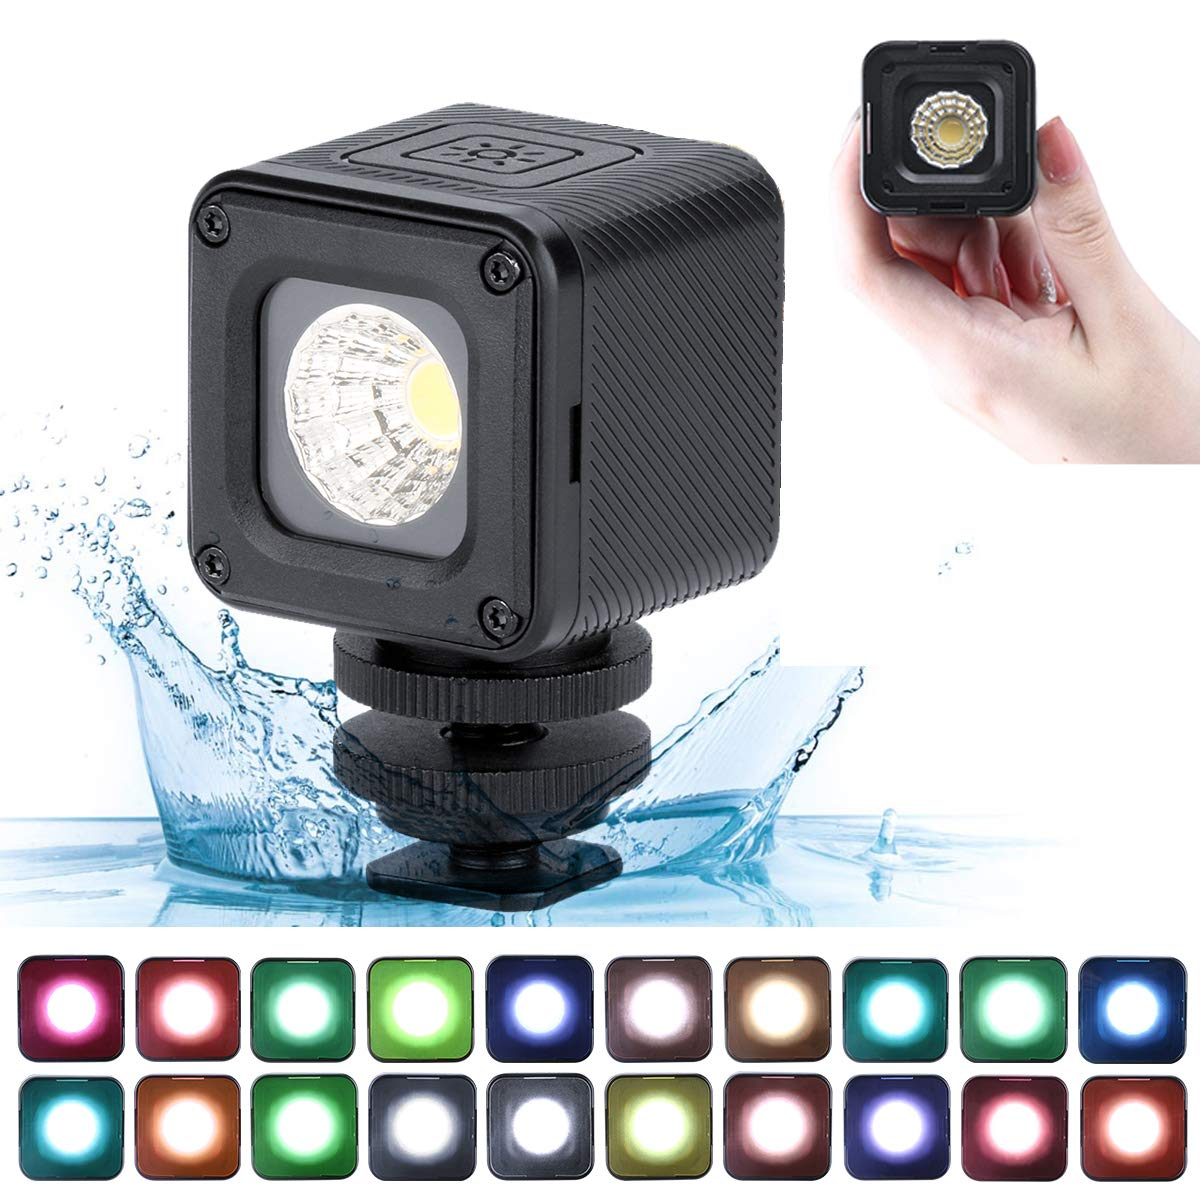 Super Bright 10m Waterproof LED Video Light - ULANZI L1 Pro Vlog Dimmable Fill Light on Camera with 20pcs Color Filters for Yuneec Drones DJI Osmo Pocket Osmo Action Gopro 7/6/5 Sony DSLR Camera by ULANZI Select